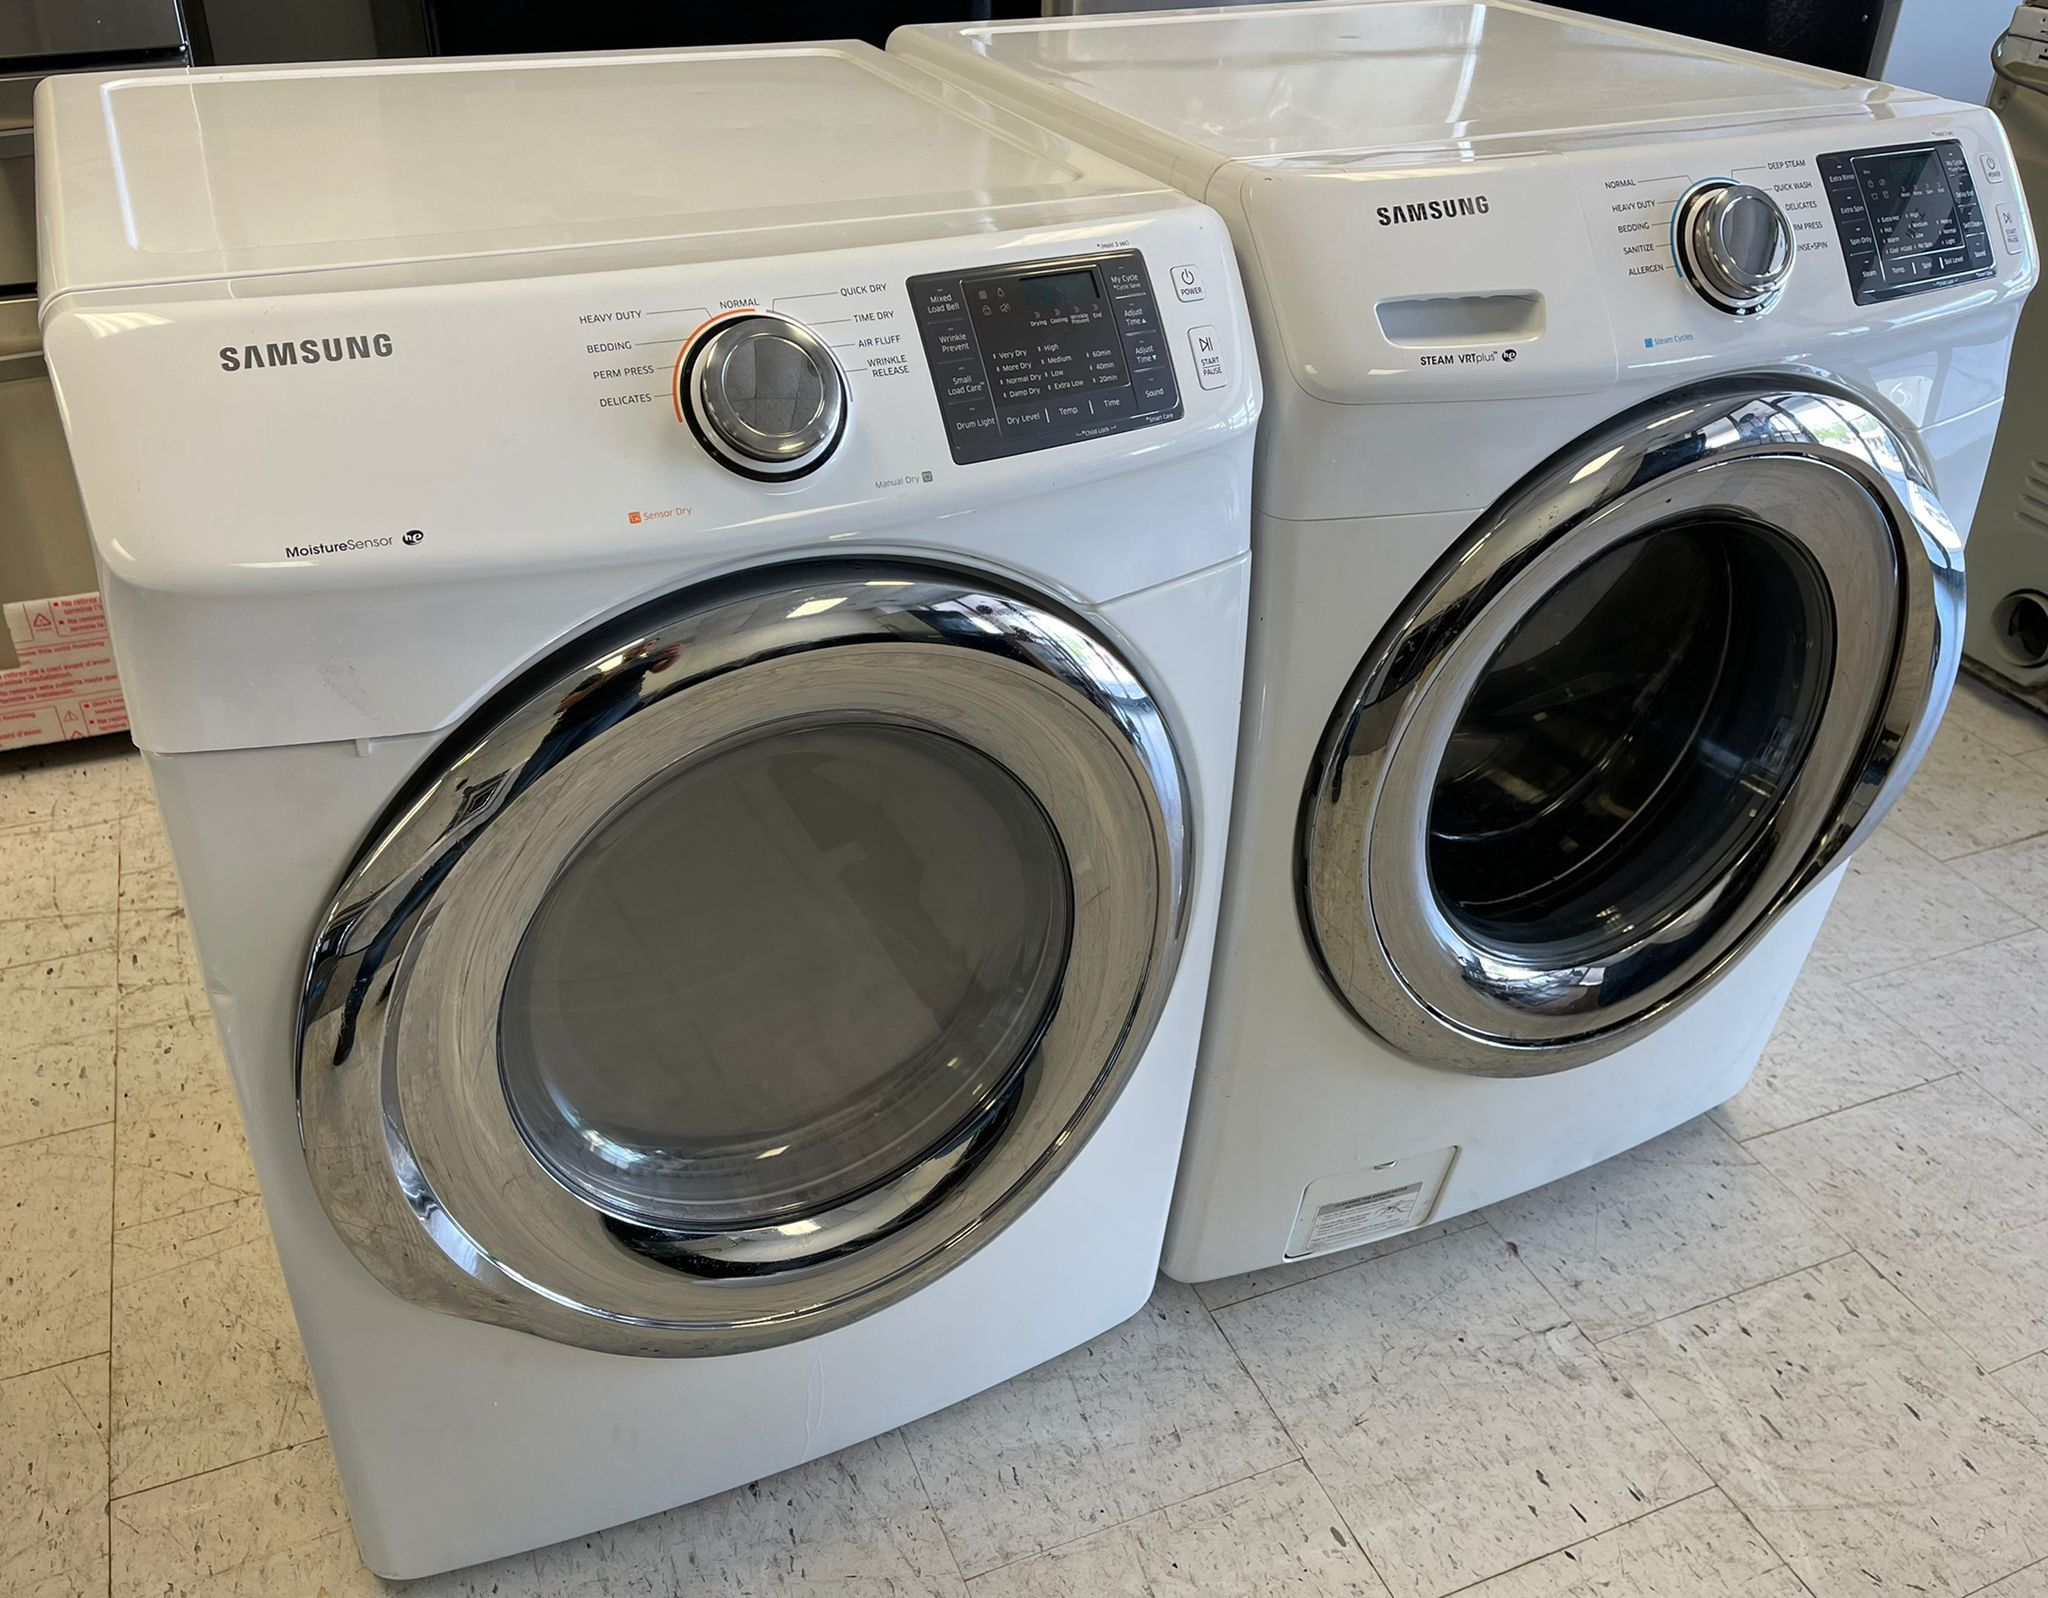 Samsung Front Load Washer And Electric Dryer Set(Stackable)